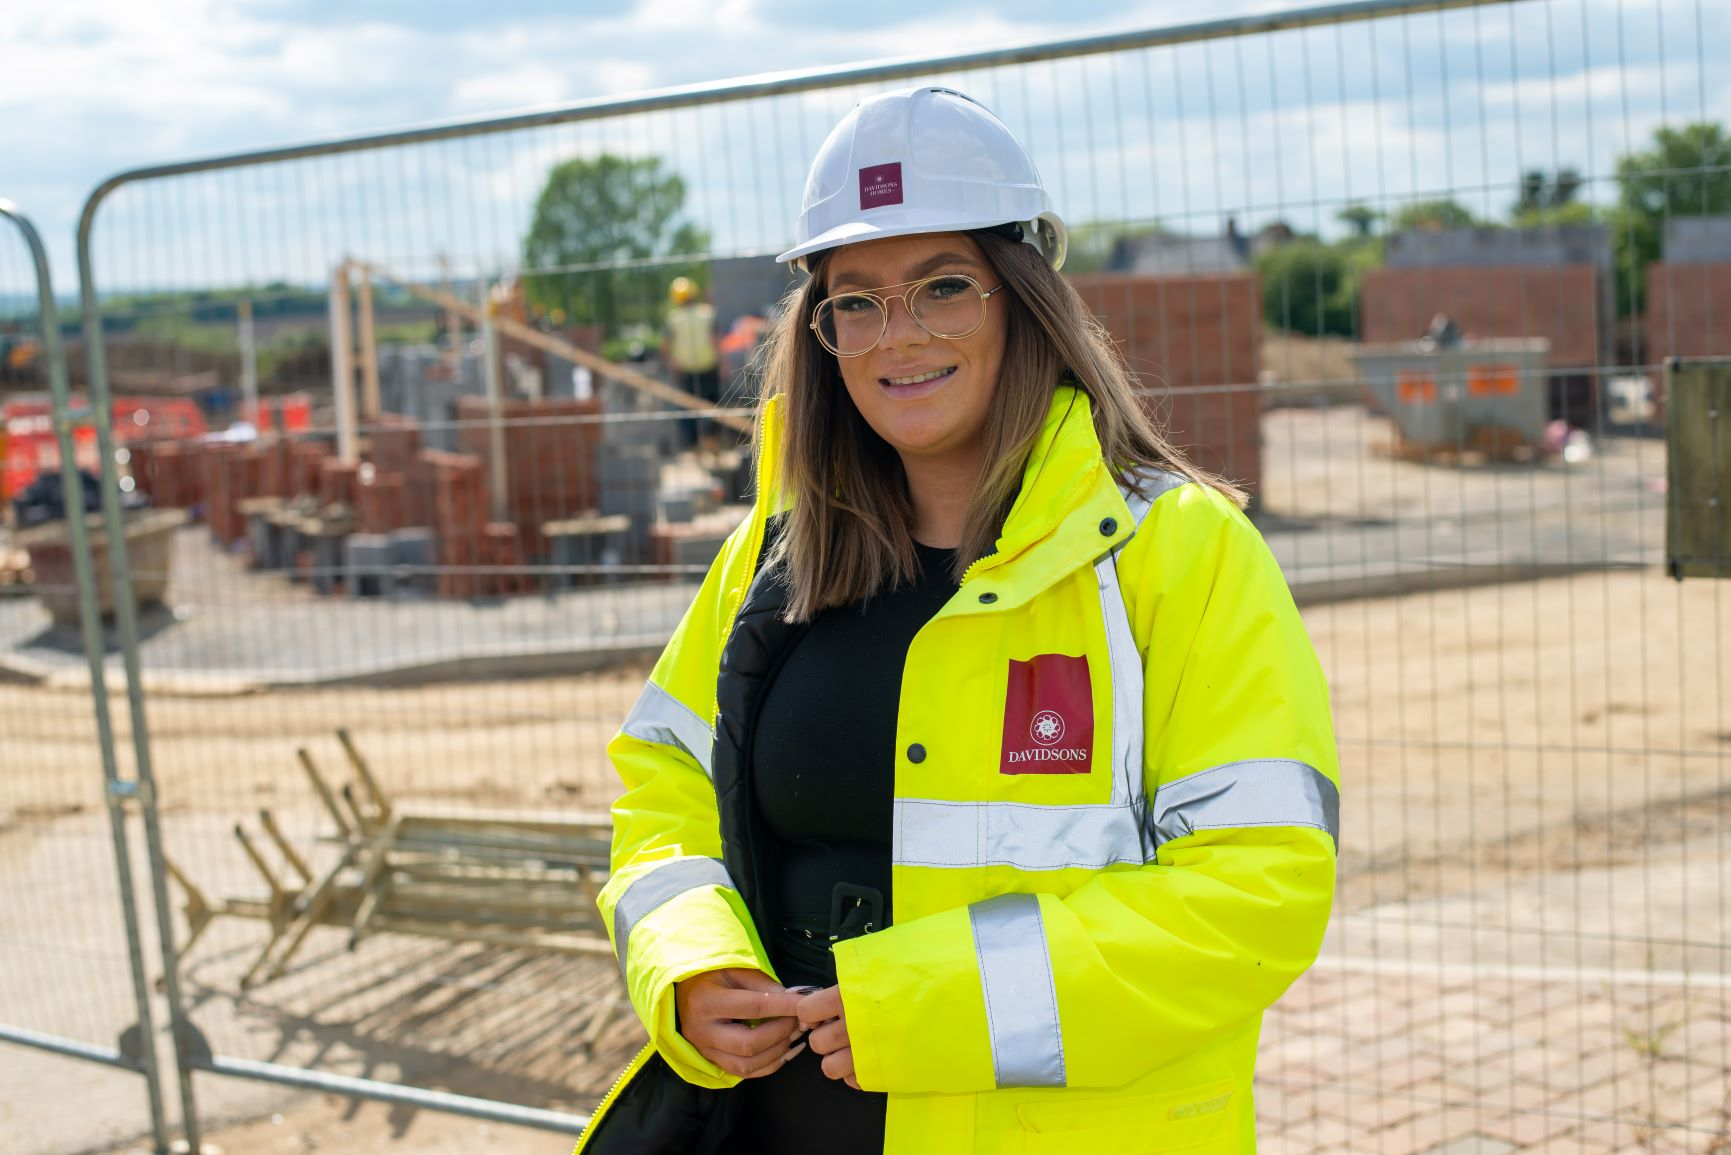 Apprentice site manager aims to build a successful career with Davidsons Homes